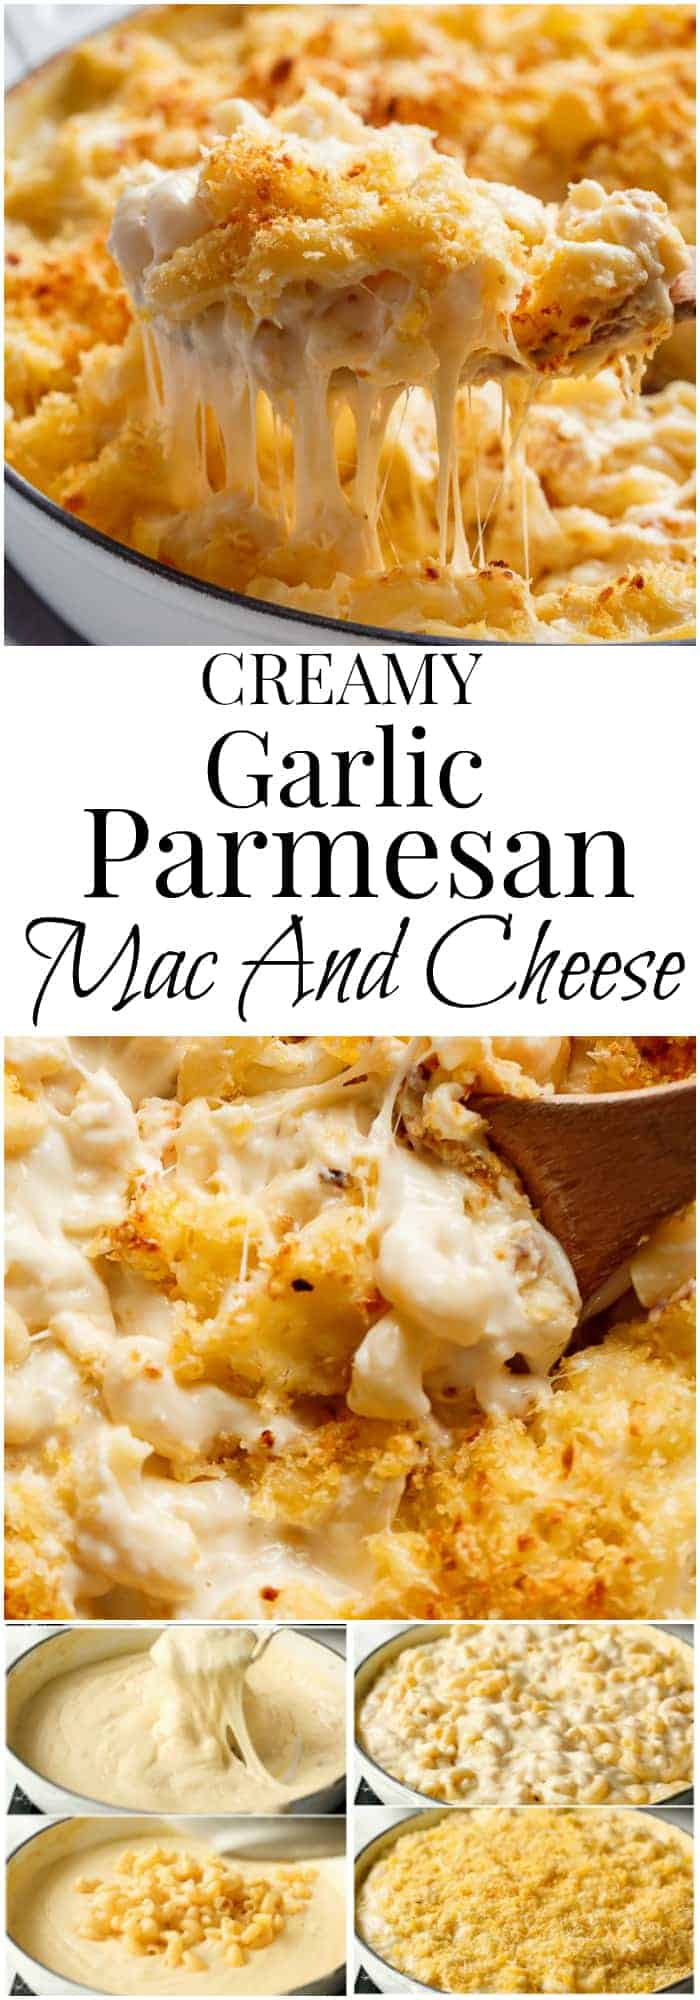 Creamy garlic parmesan mac and cheese video cafe delites garlic parmesan mac and cheese is better than the original a creamy garlic parmesan cheese forumfinder Choice Image